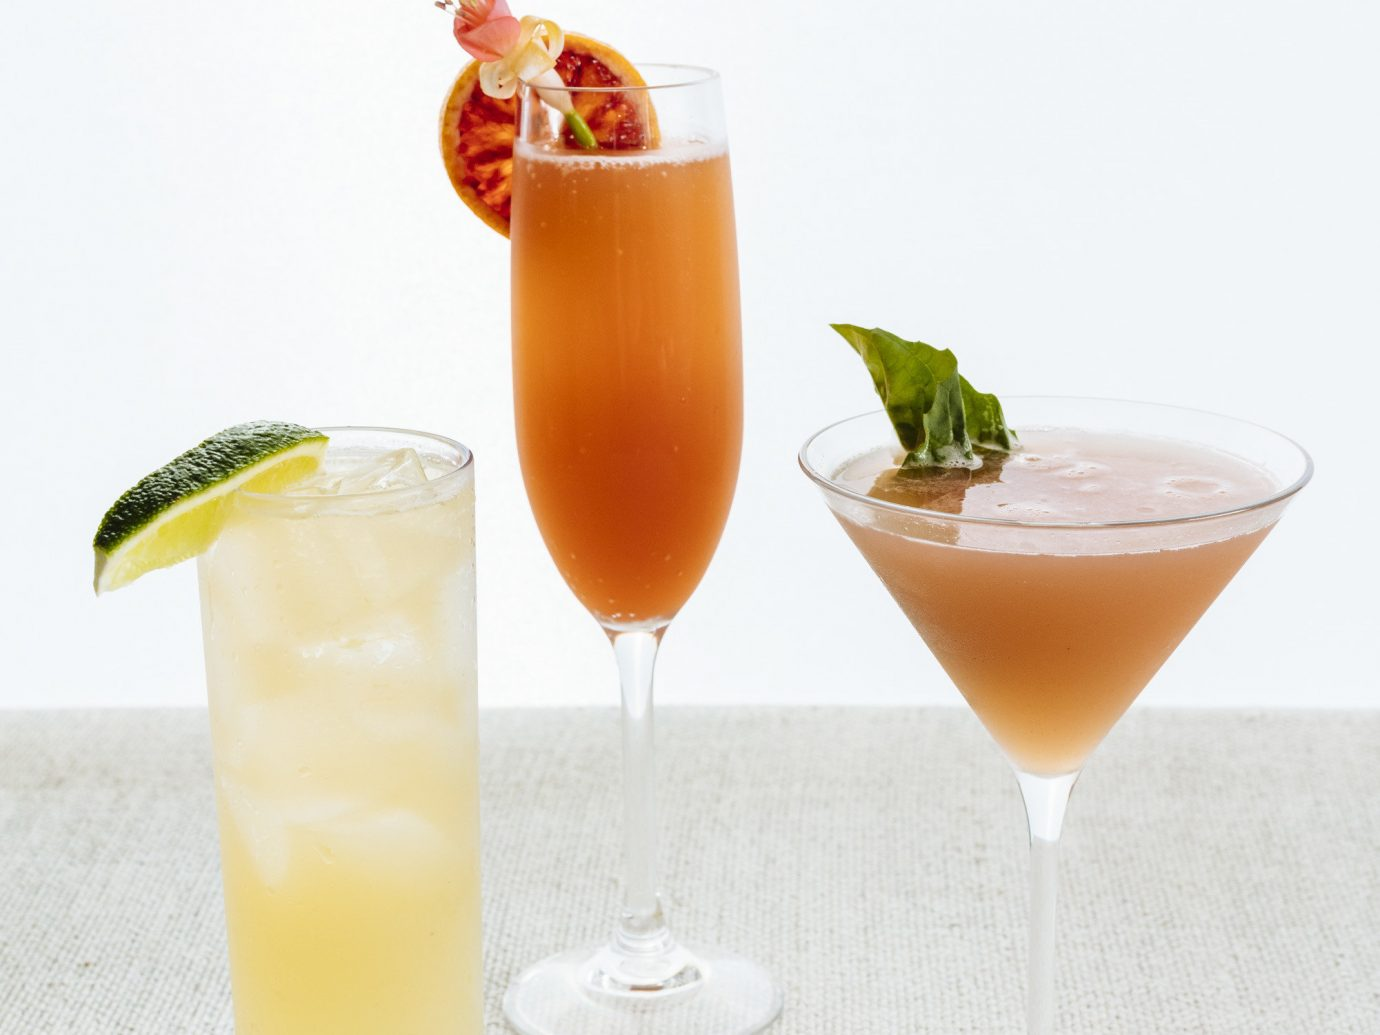 Food + Drink Girls Getaways Hotels Jetsetter Guides shopping Style + Design Weekend Getaways cup table Drink cocktail glass non alcoholic beverage cocktail garnish juice orange drink mai tai bellini harvey wallbanger wine cocktail sea breeze fuzzy navel spritzer classic cocktail champagne cocktail orange fruit drink